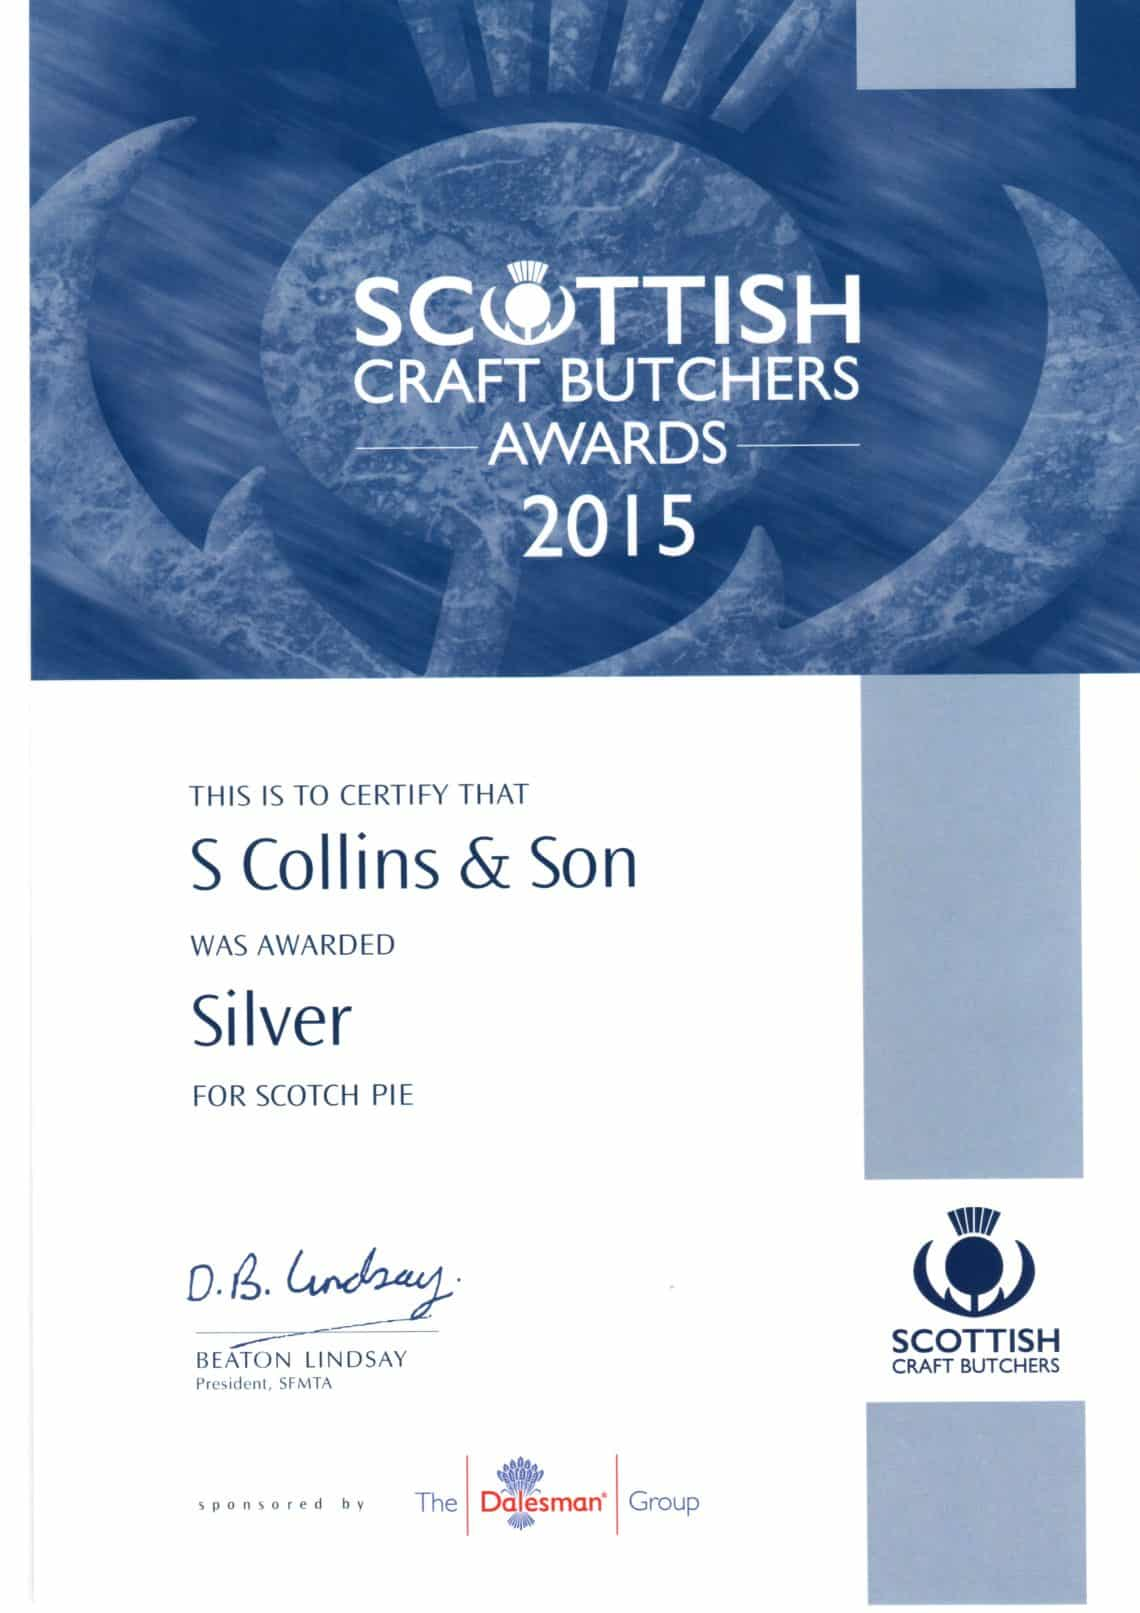 Scottish Craft Butchers Awards: 2015